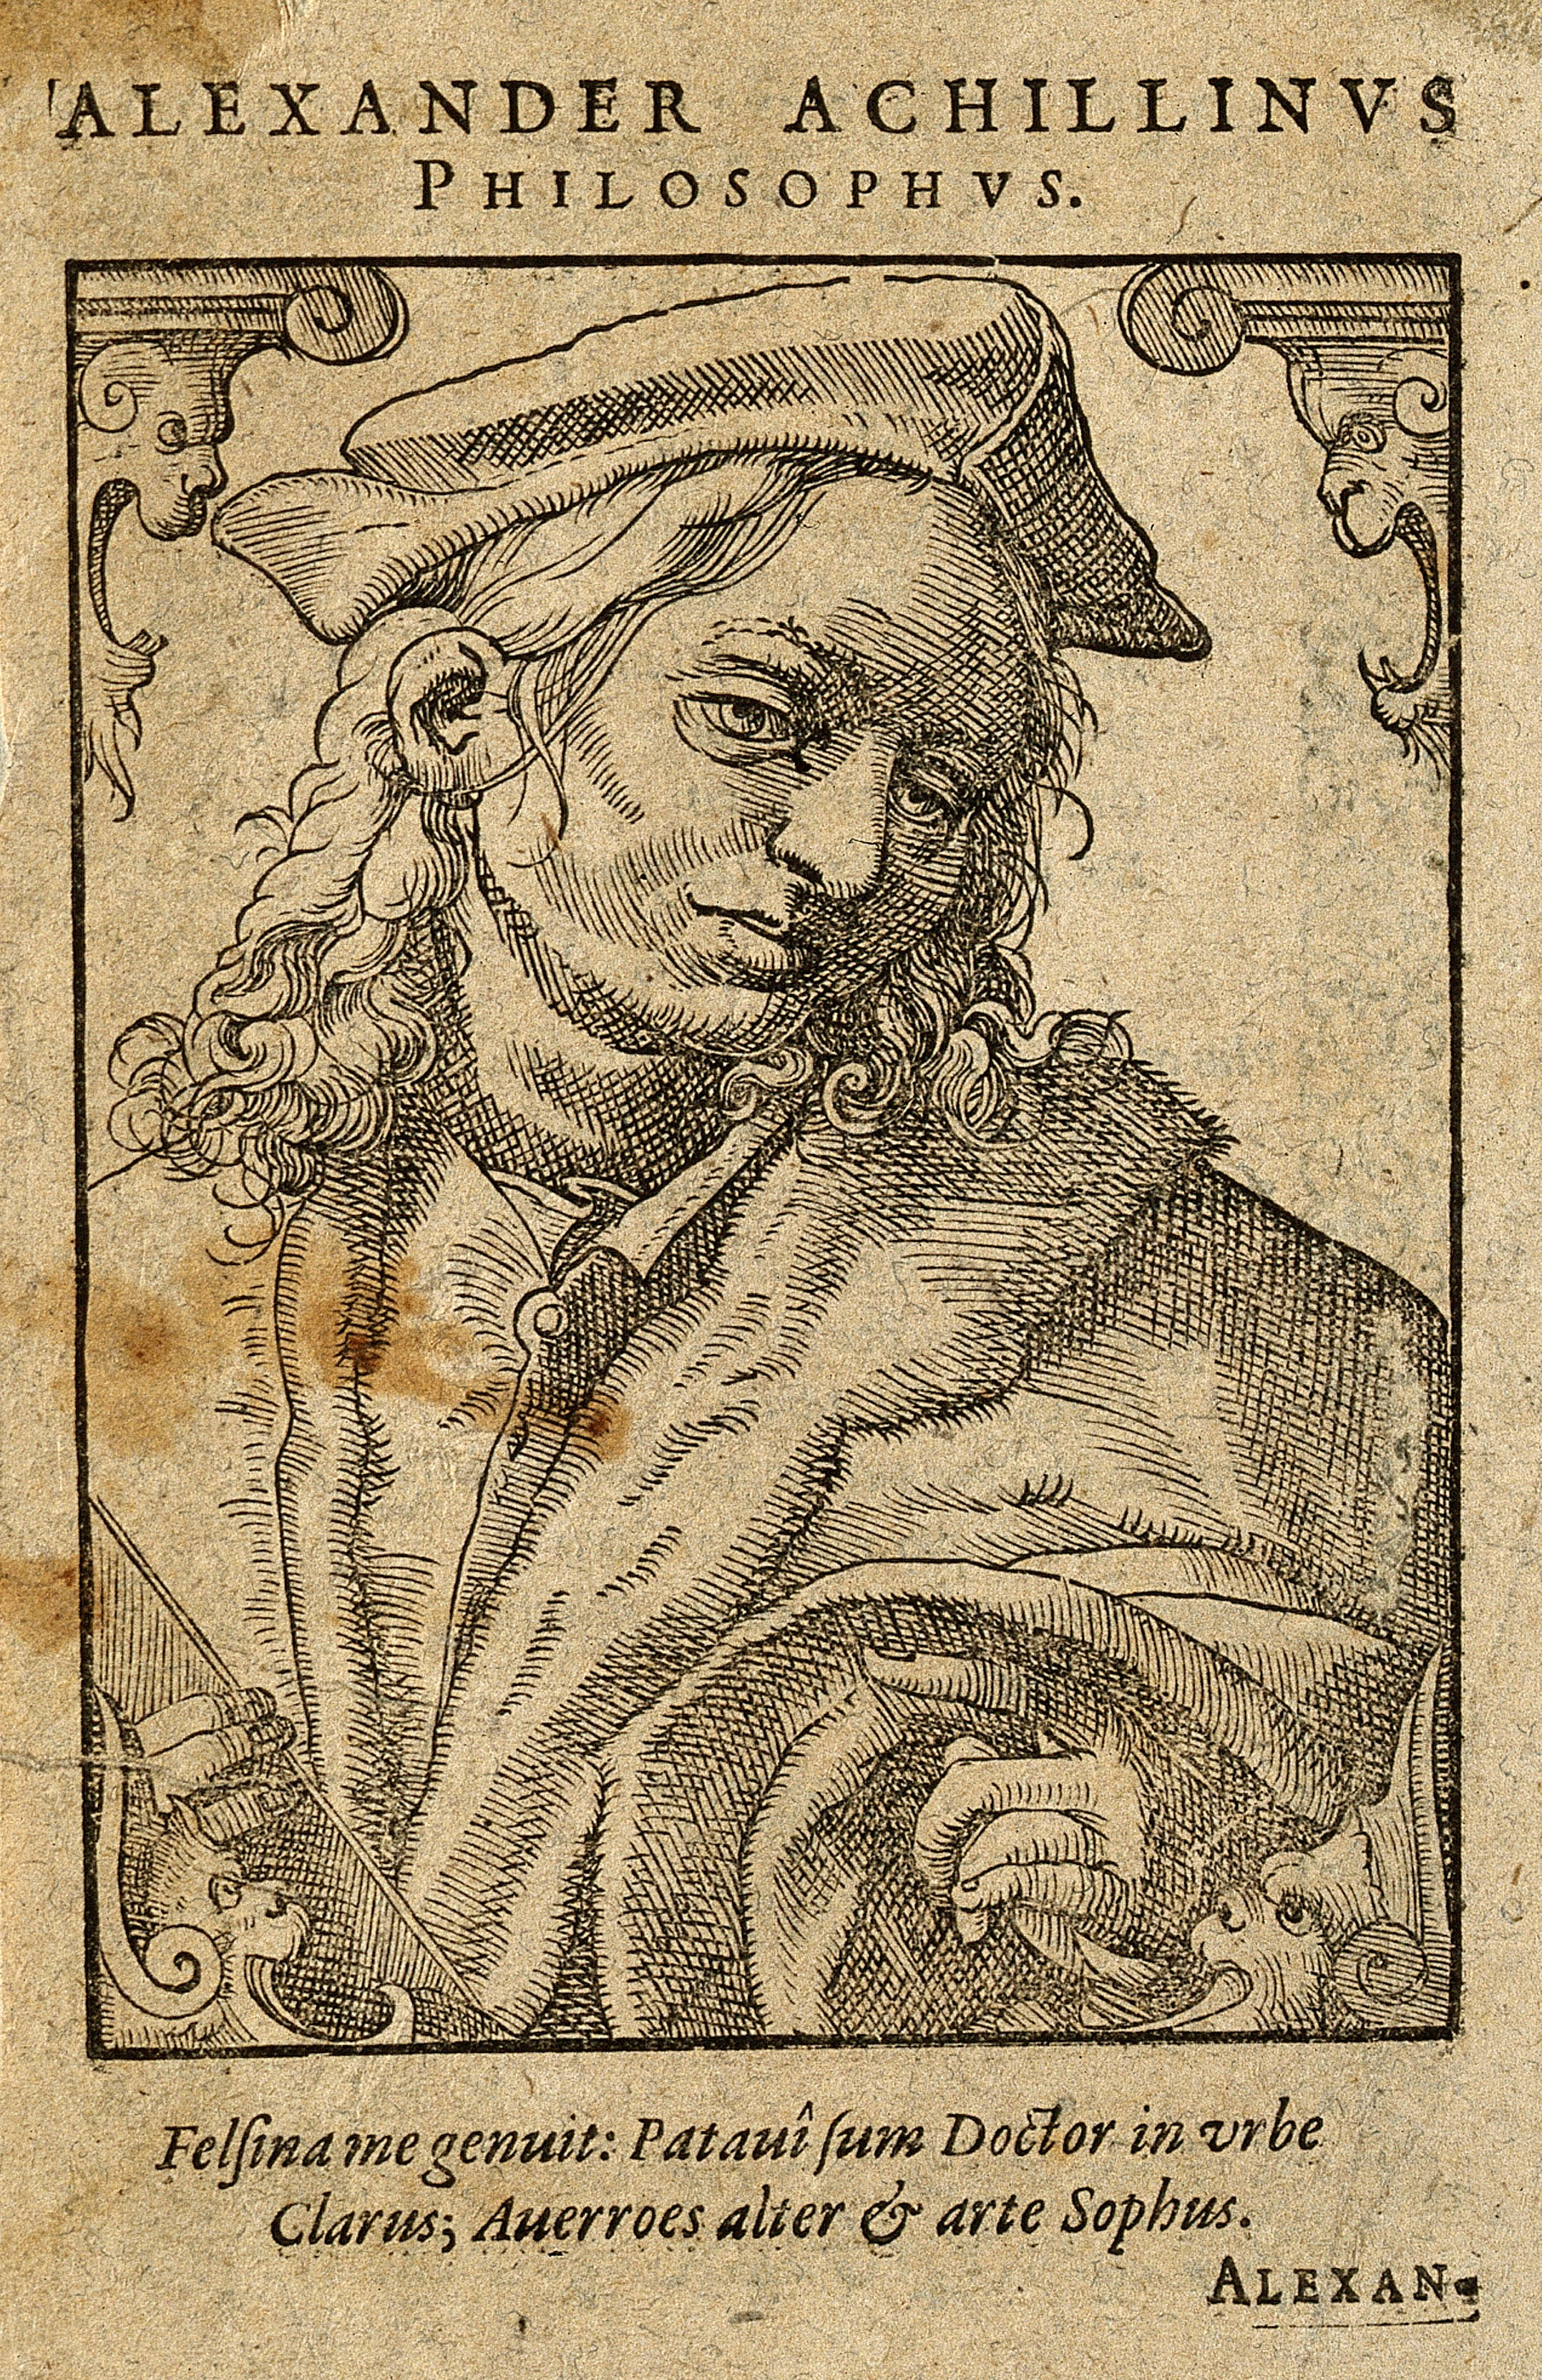 Woodcut by T. Stimmer, 1589. Wellcome V0000031.